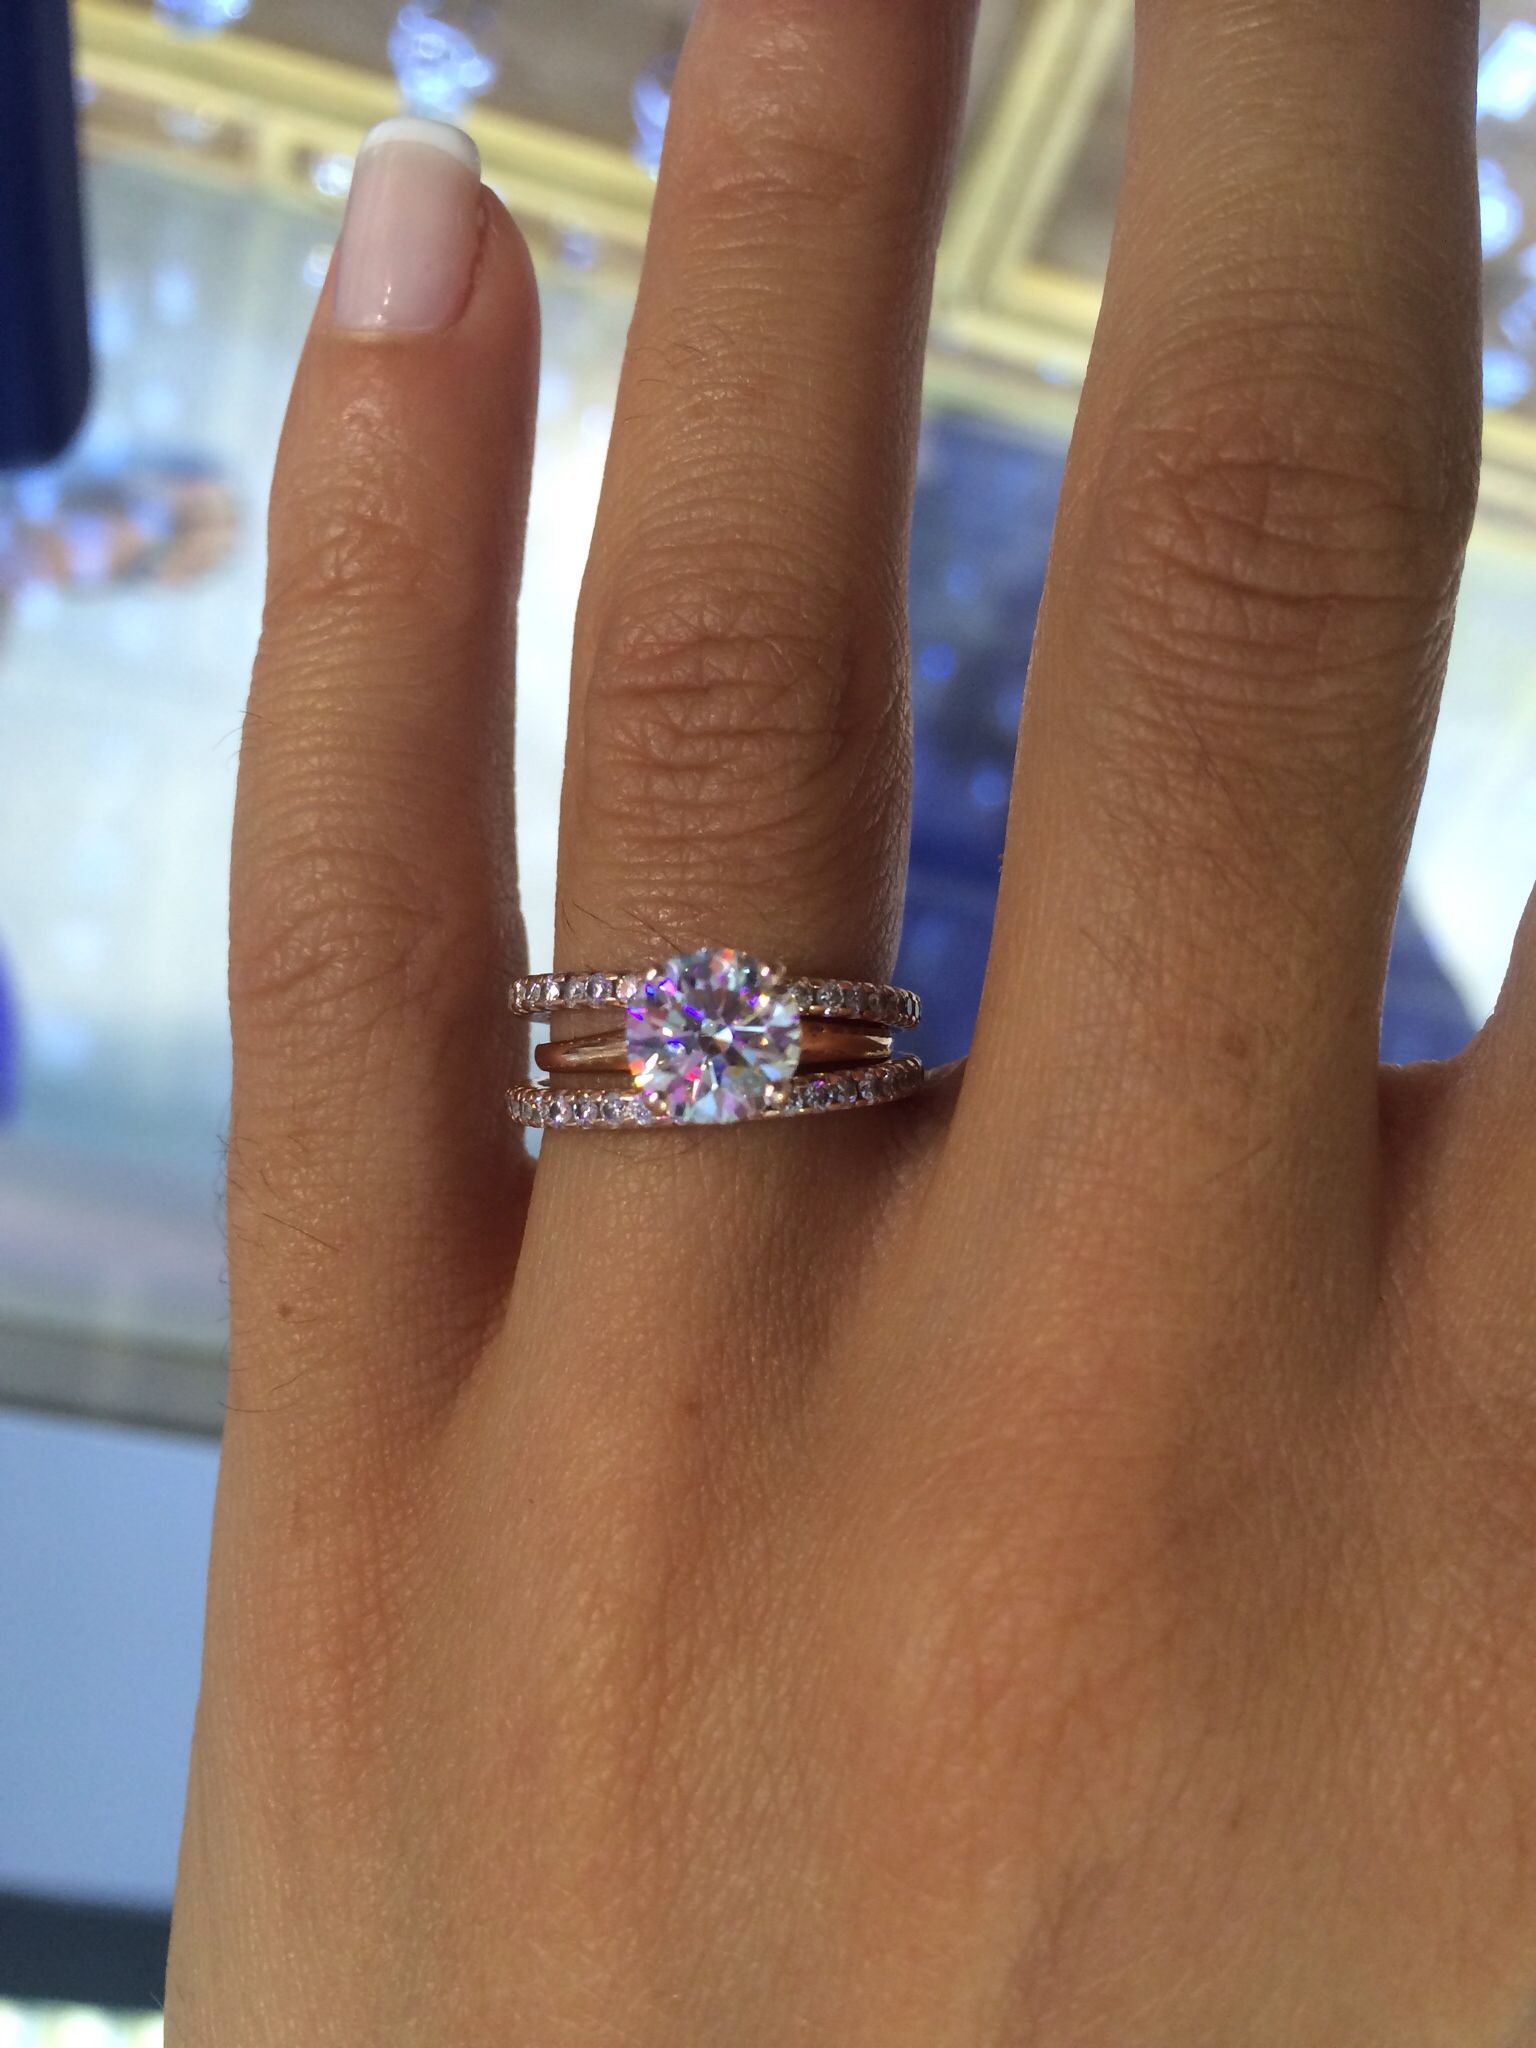 engagement wedding rings 1 21 ct E VVS2 diamond engagement ring set in rose gold with two